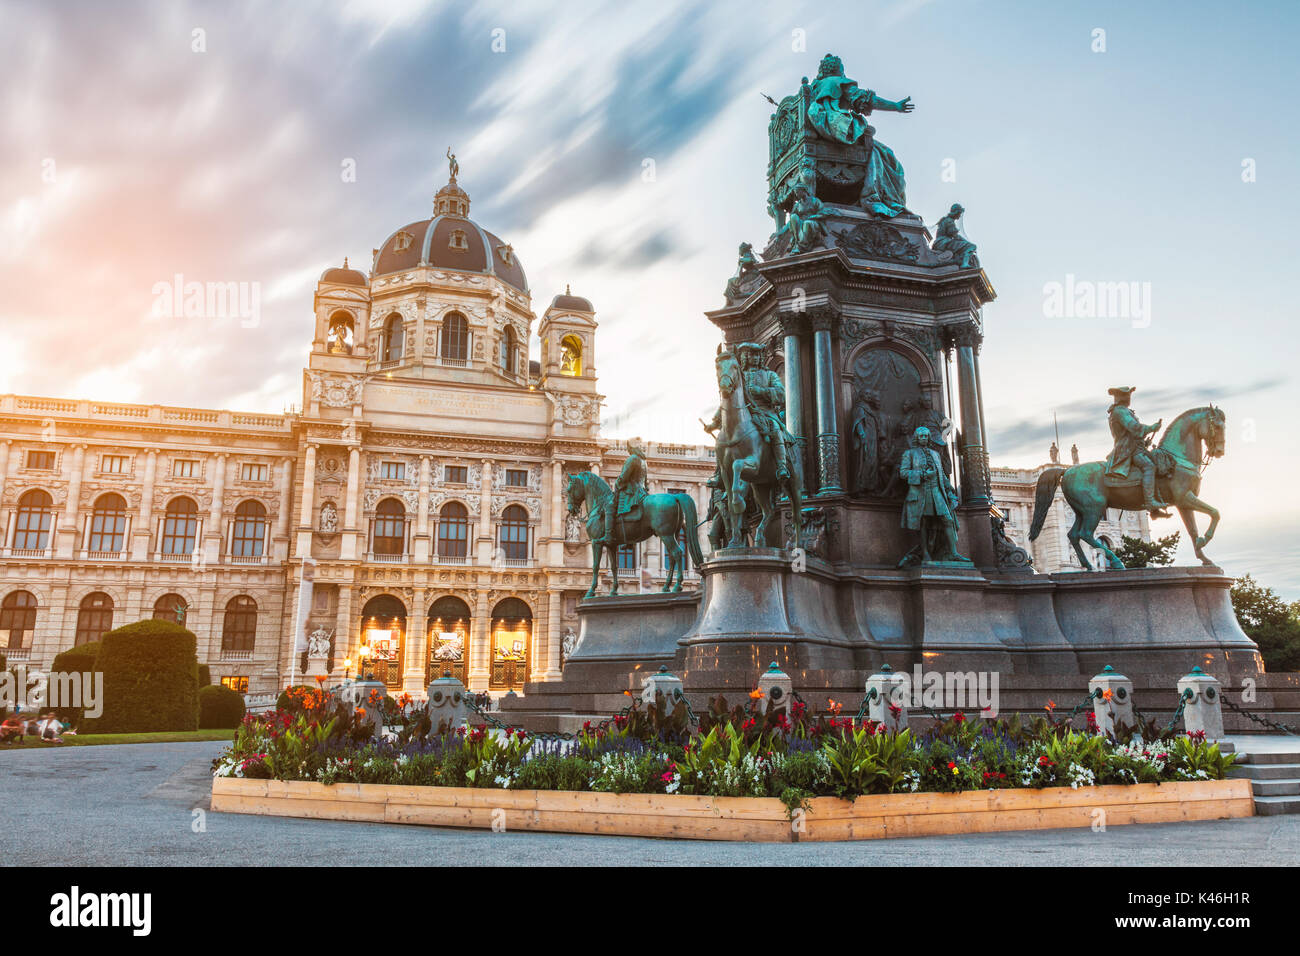 Museum of natural history Vienna Austria at sunset - Stock Image